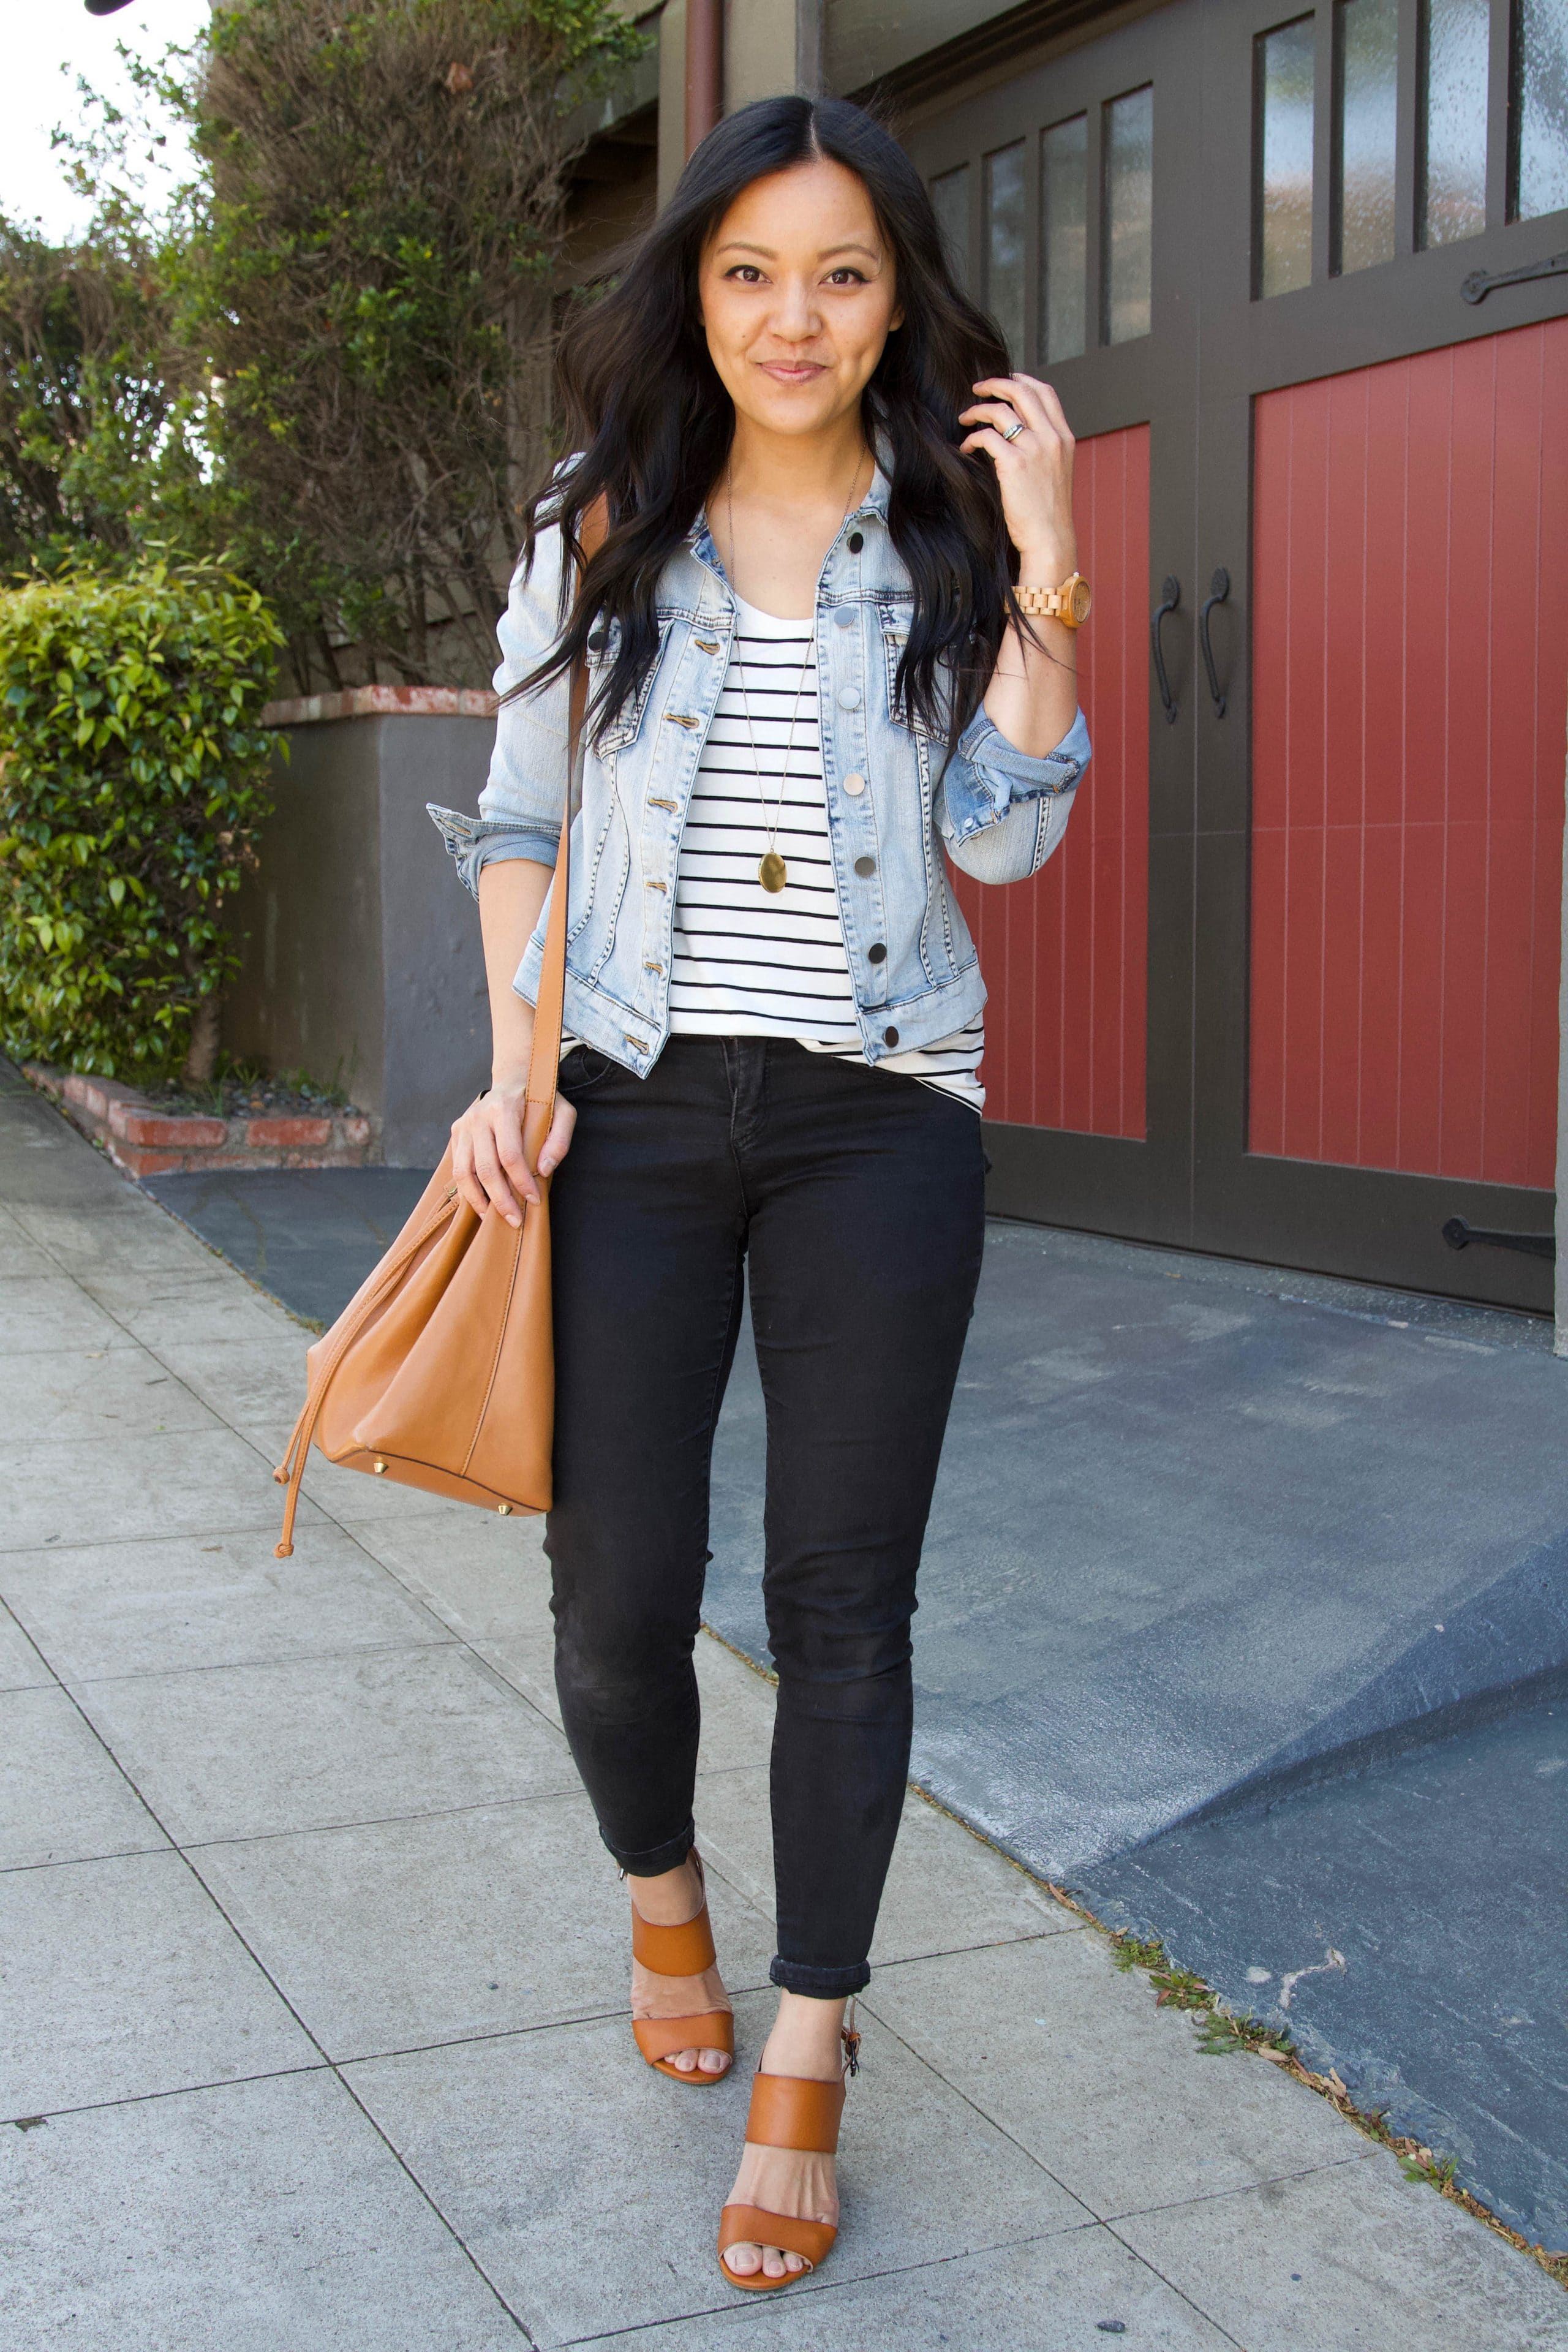 black and white striped tee + black jeans + denim jacket + tan wedges + tan purse